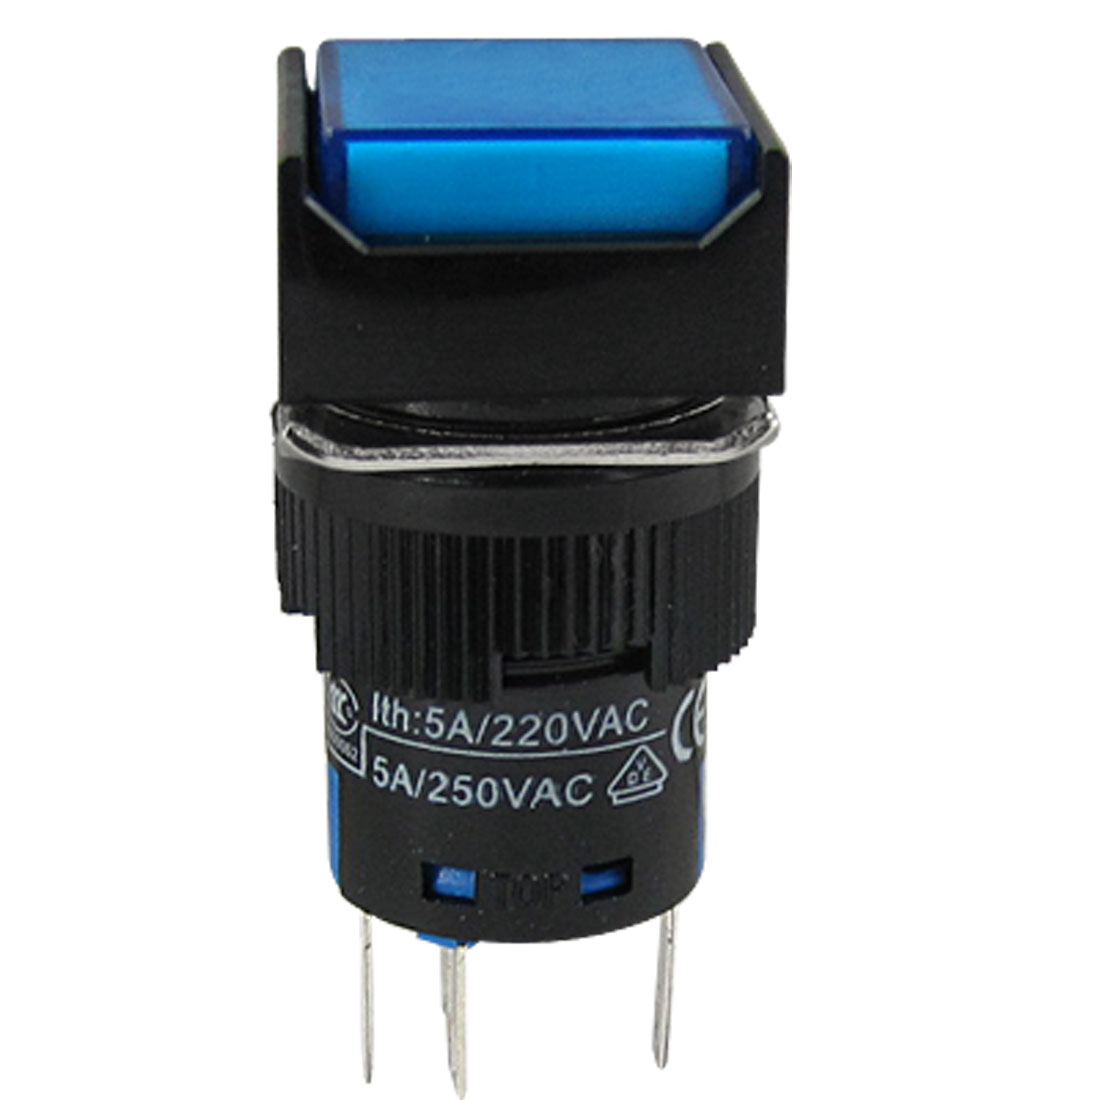 Self-locking Contact Blue Cap Lamp Push Button Switch AC 220V